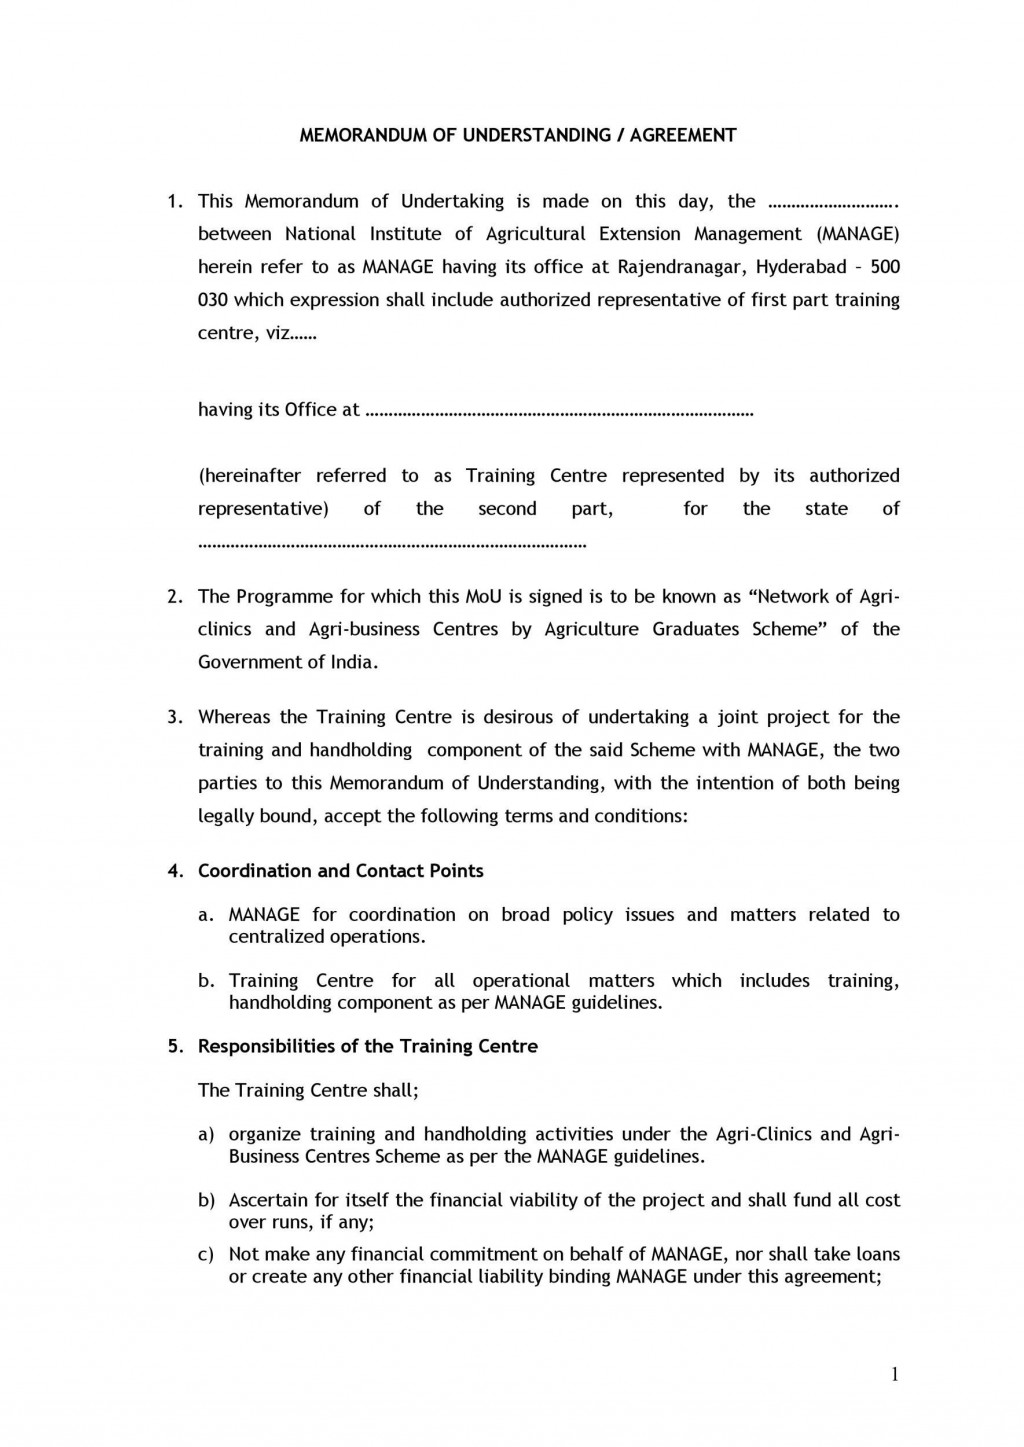 009 Outstanding Memorandum Of Agreement Template Highest Clarity  Templates Sample Tagalog South Africa Philippine DocLarge